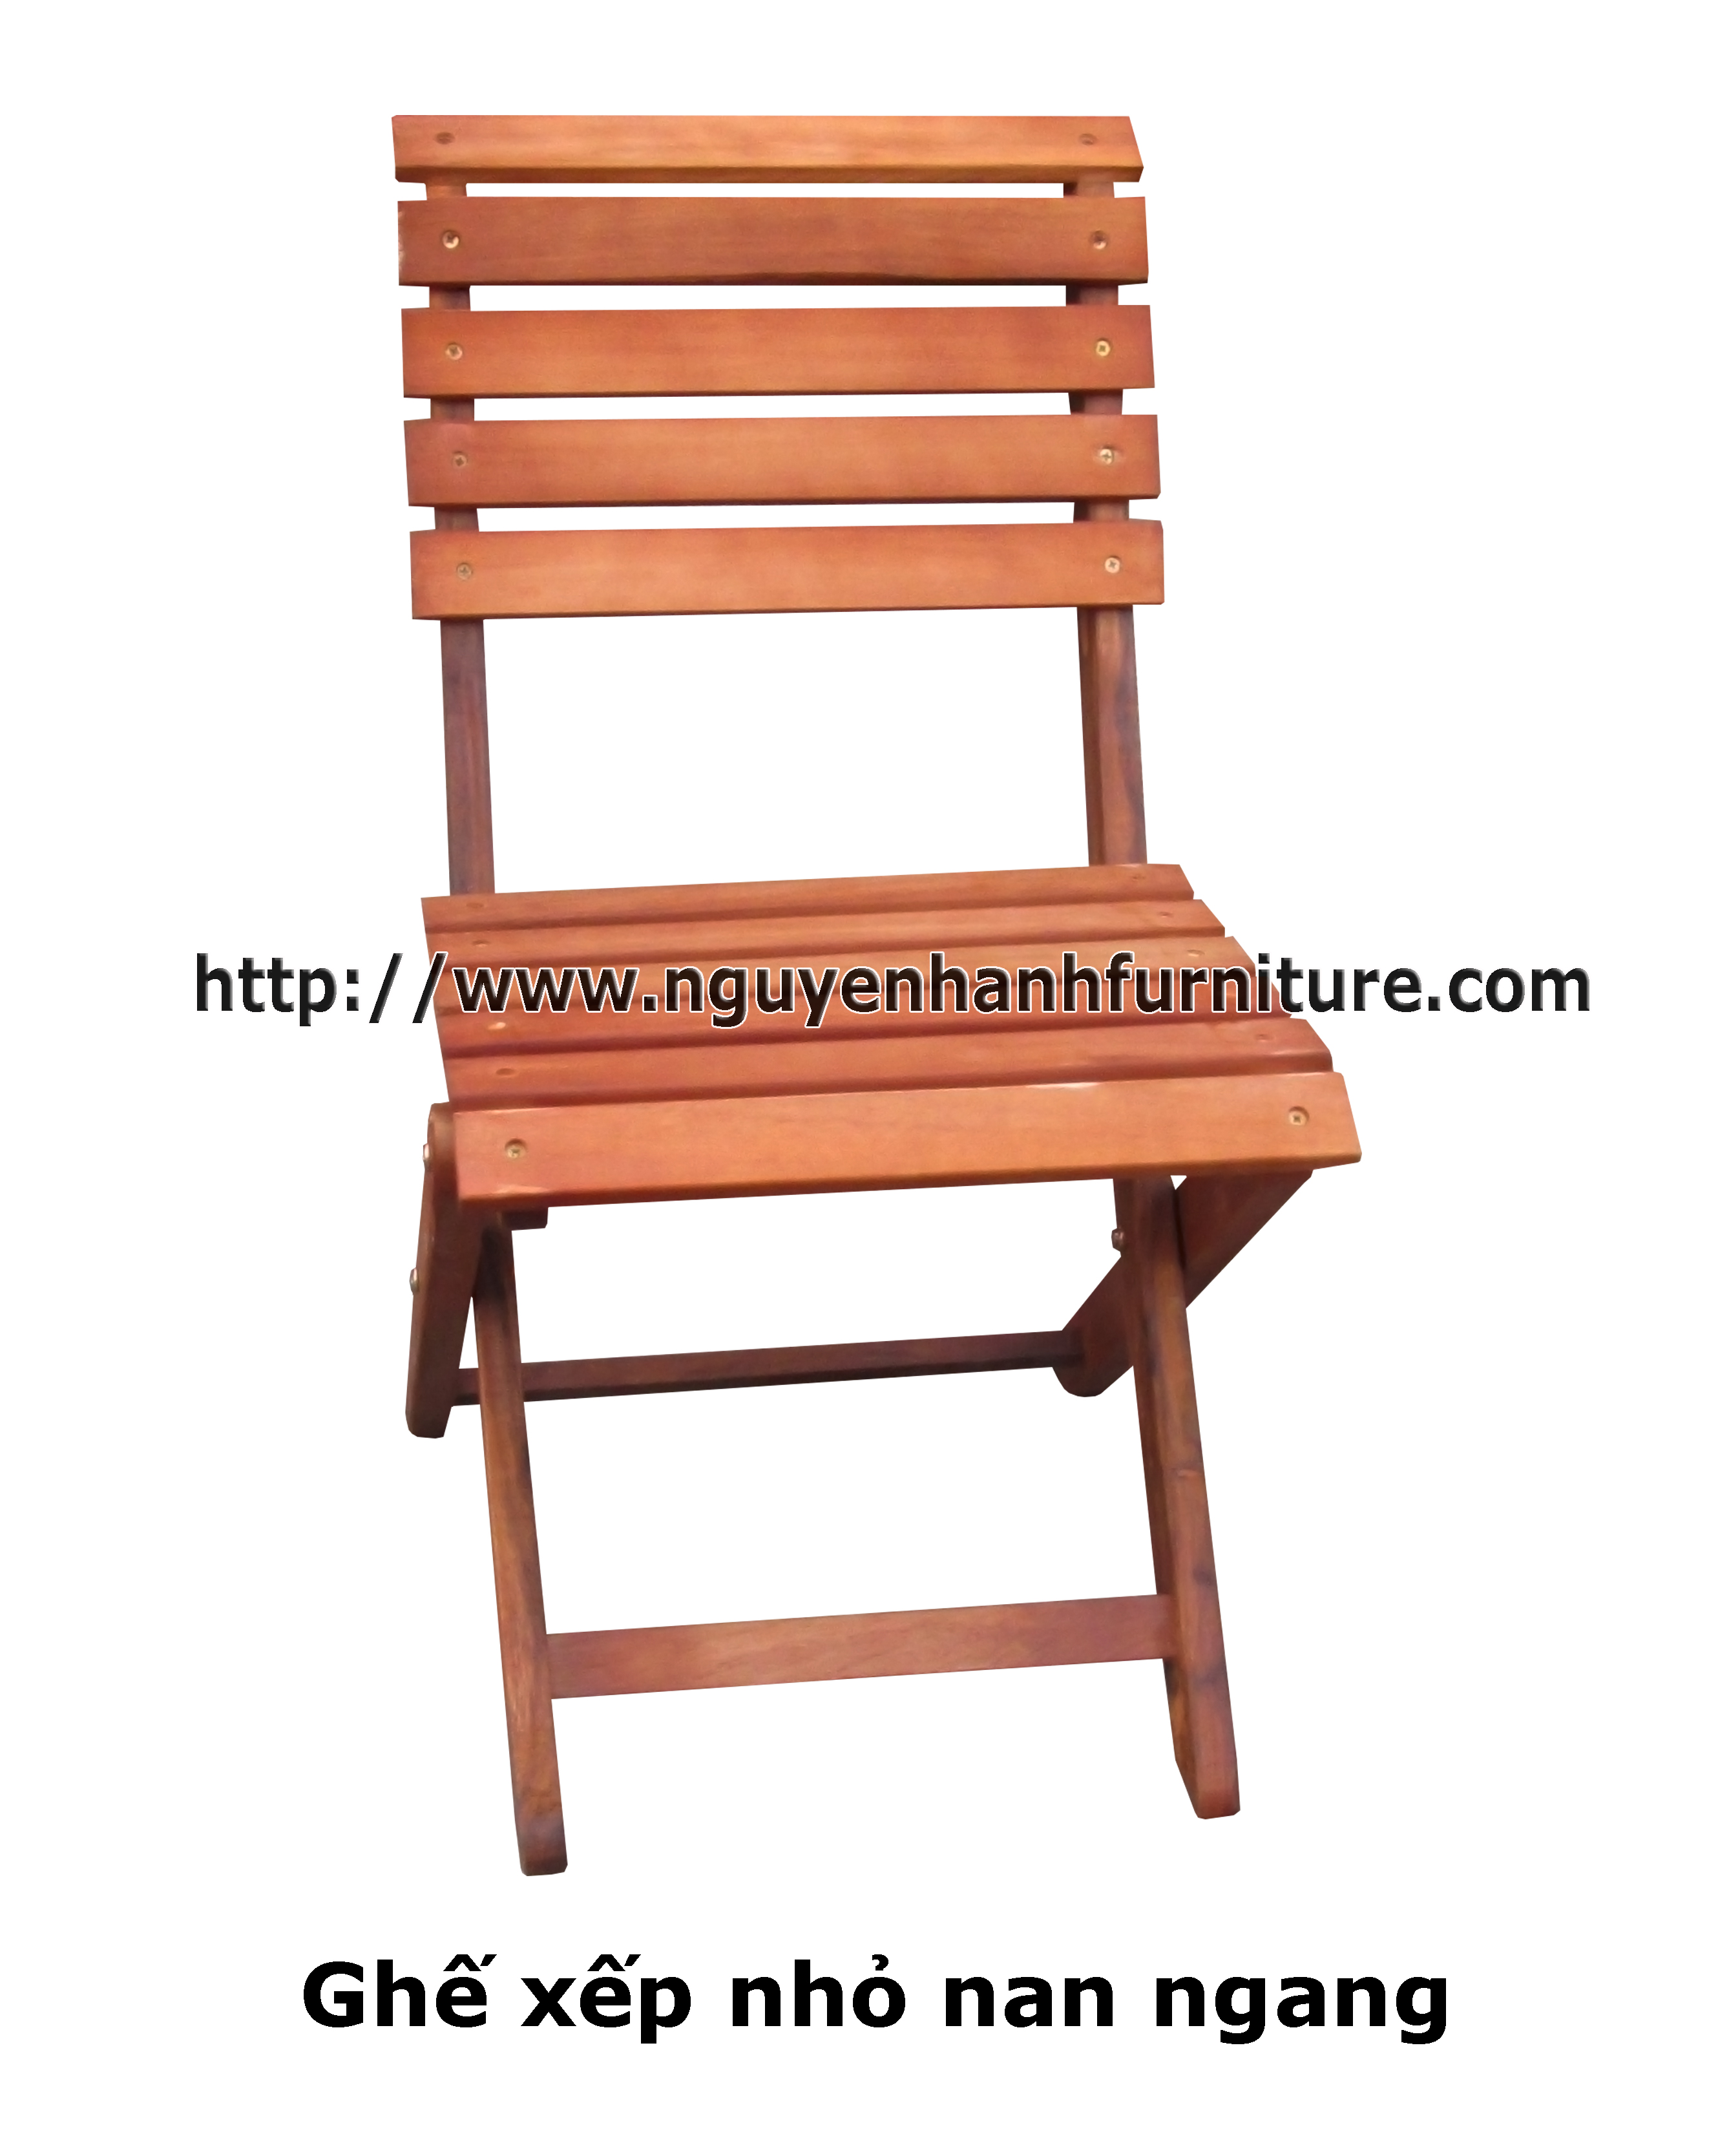 Name product: Small chair (new) - Description: Eucalyptus wood